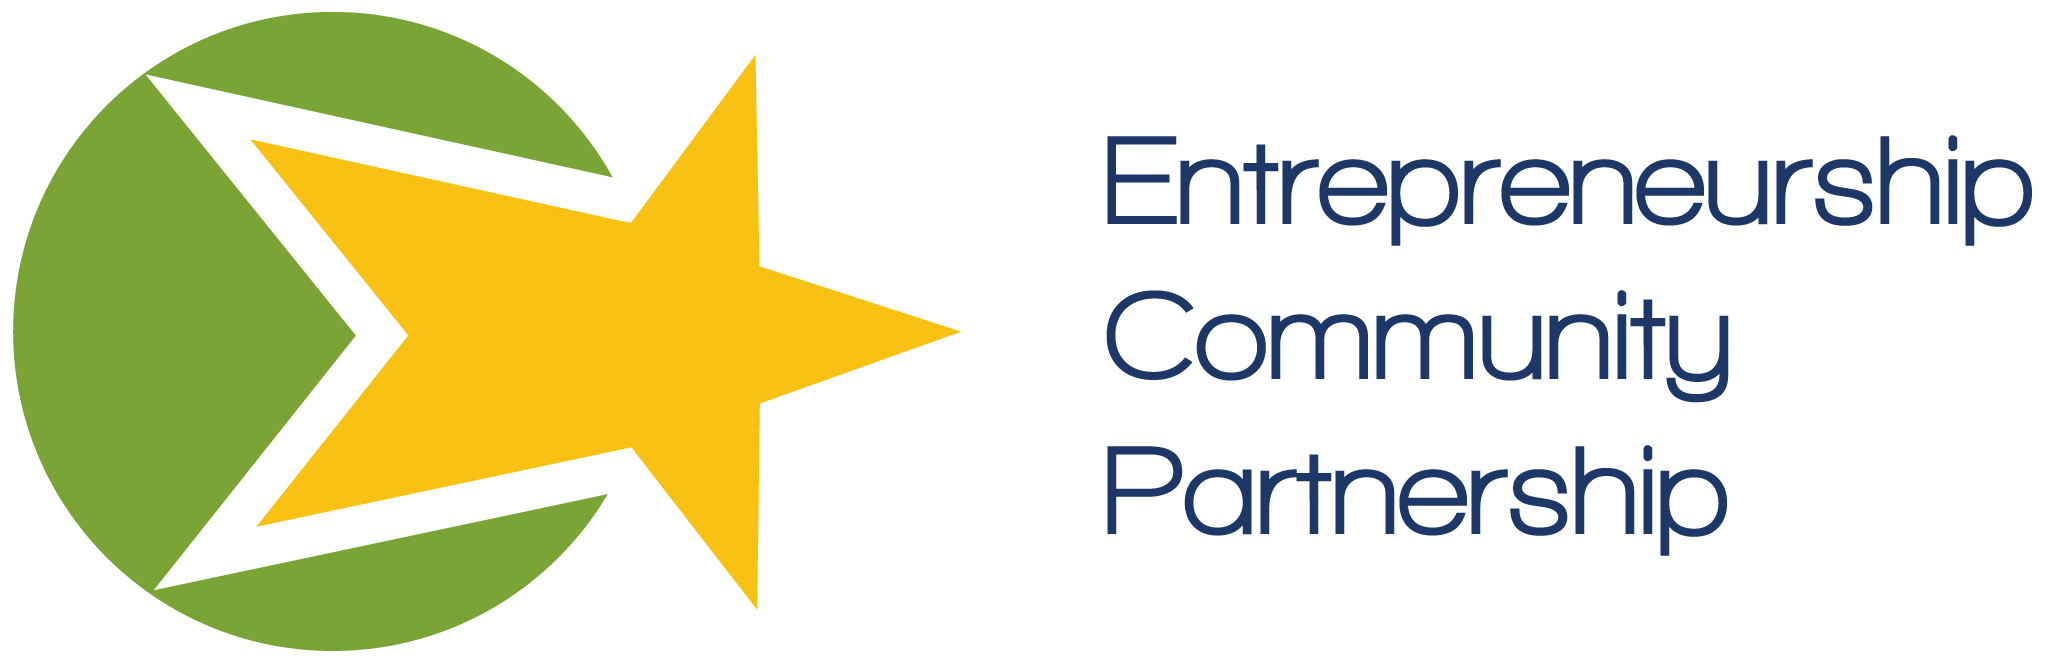 Entrepreneurial Community Partnership